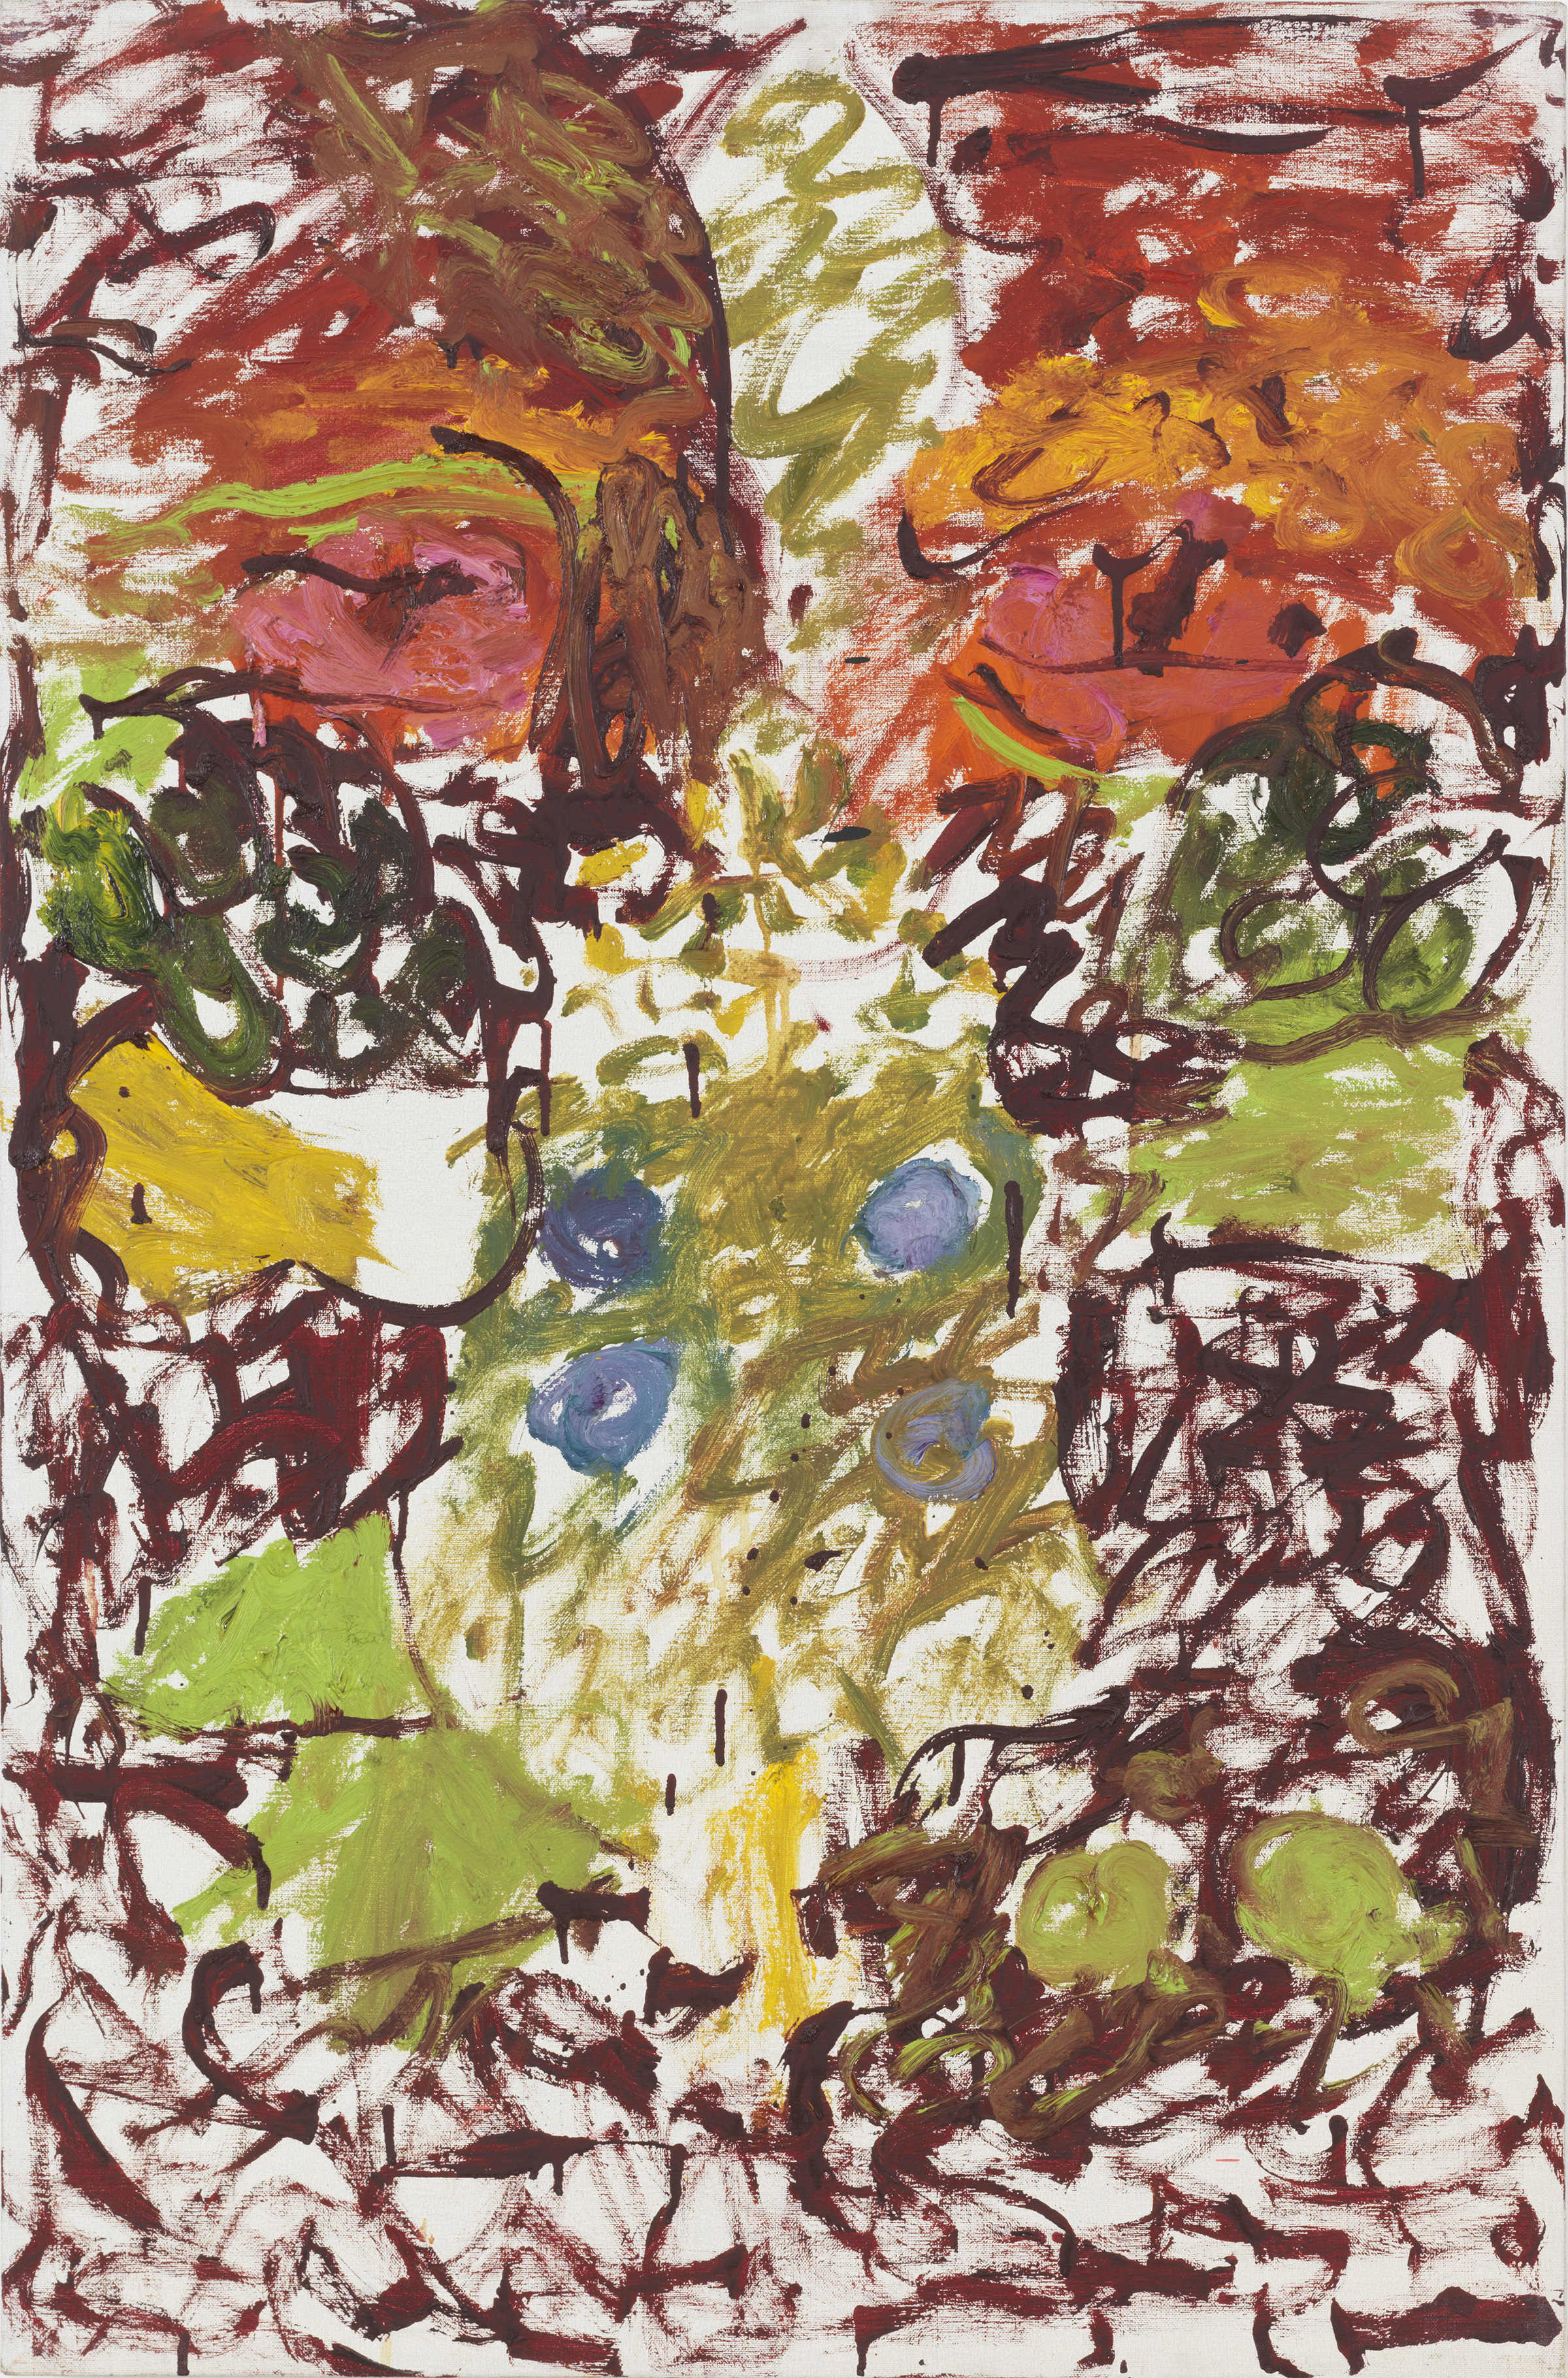 Pat Passlof  Untitled , 1965 Oil on linen 26 x 24 inches